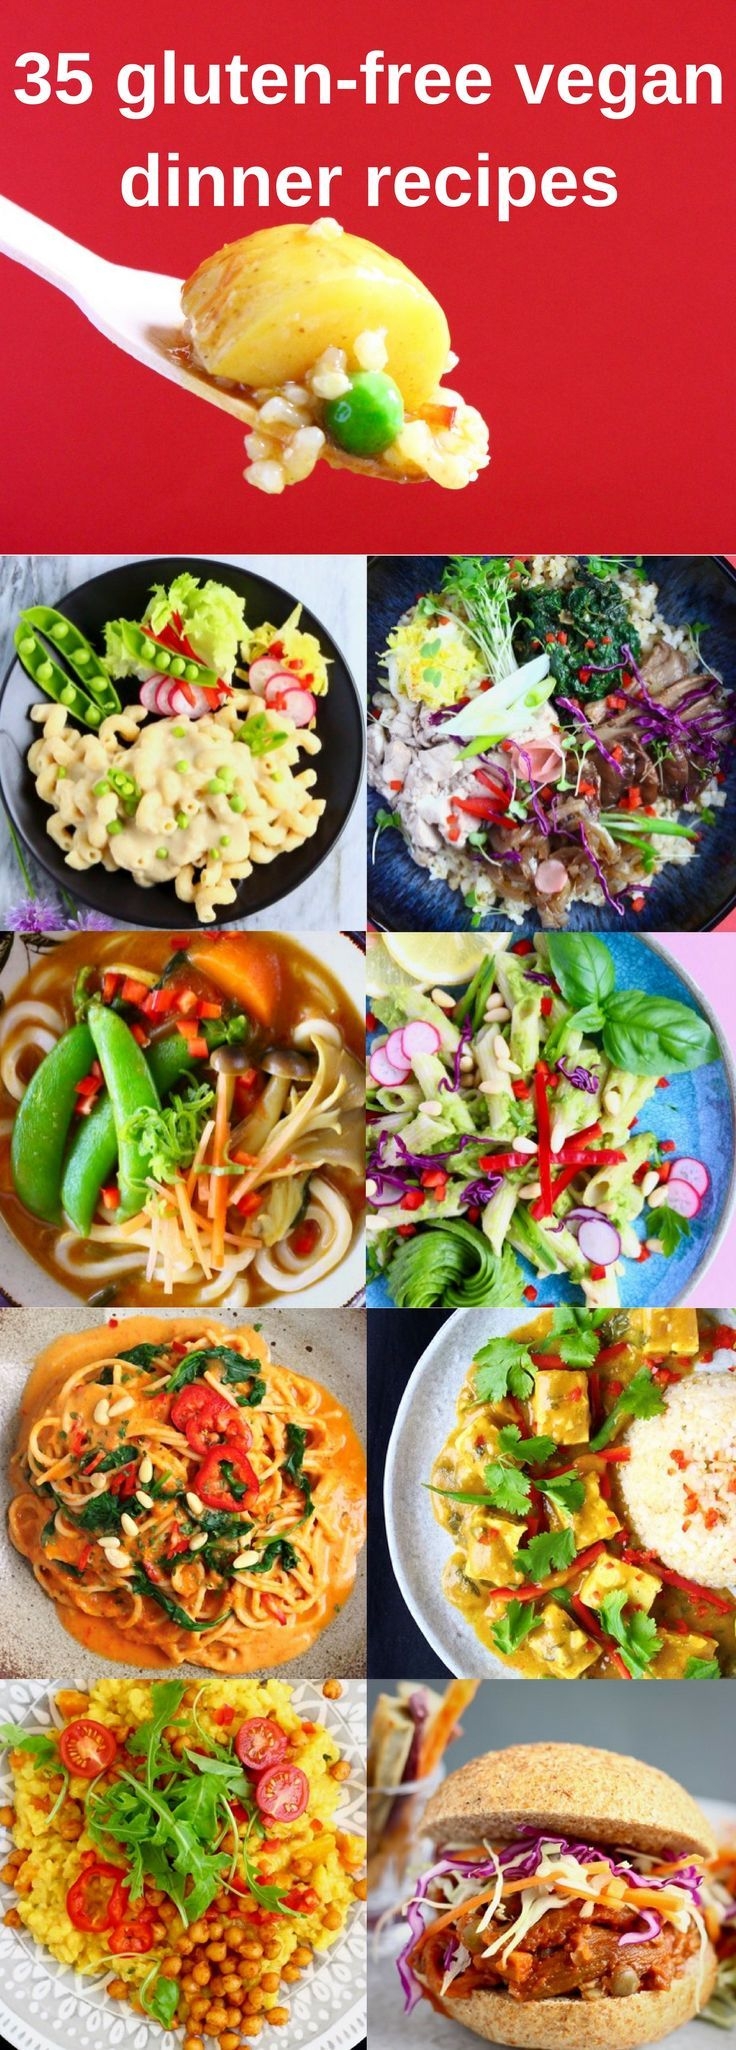 35 Vegan Gluten-Free Dinner Recipes! A selection of comforting pastas, fragrant curries, easy rice dishes, hearty burgers and flavour-packed stir fries, all made using simple, plant-based ingredients! #vegan #vegetarian #dairyfree #glutenfree #plantbased